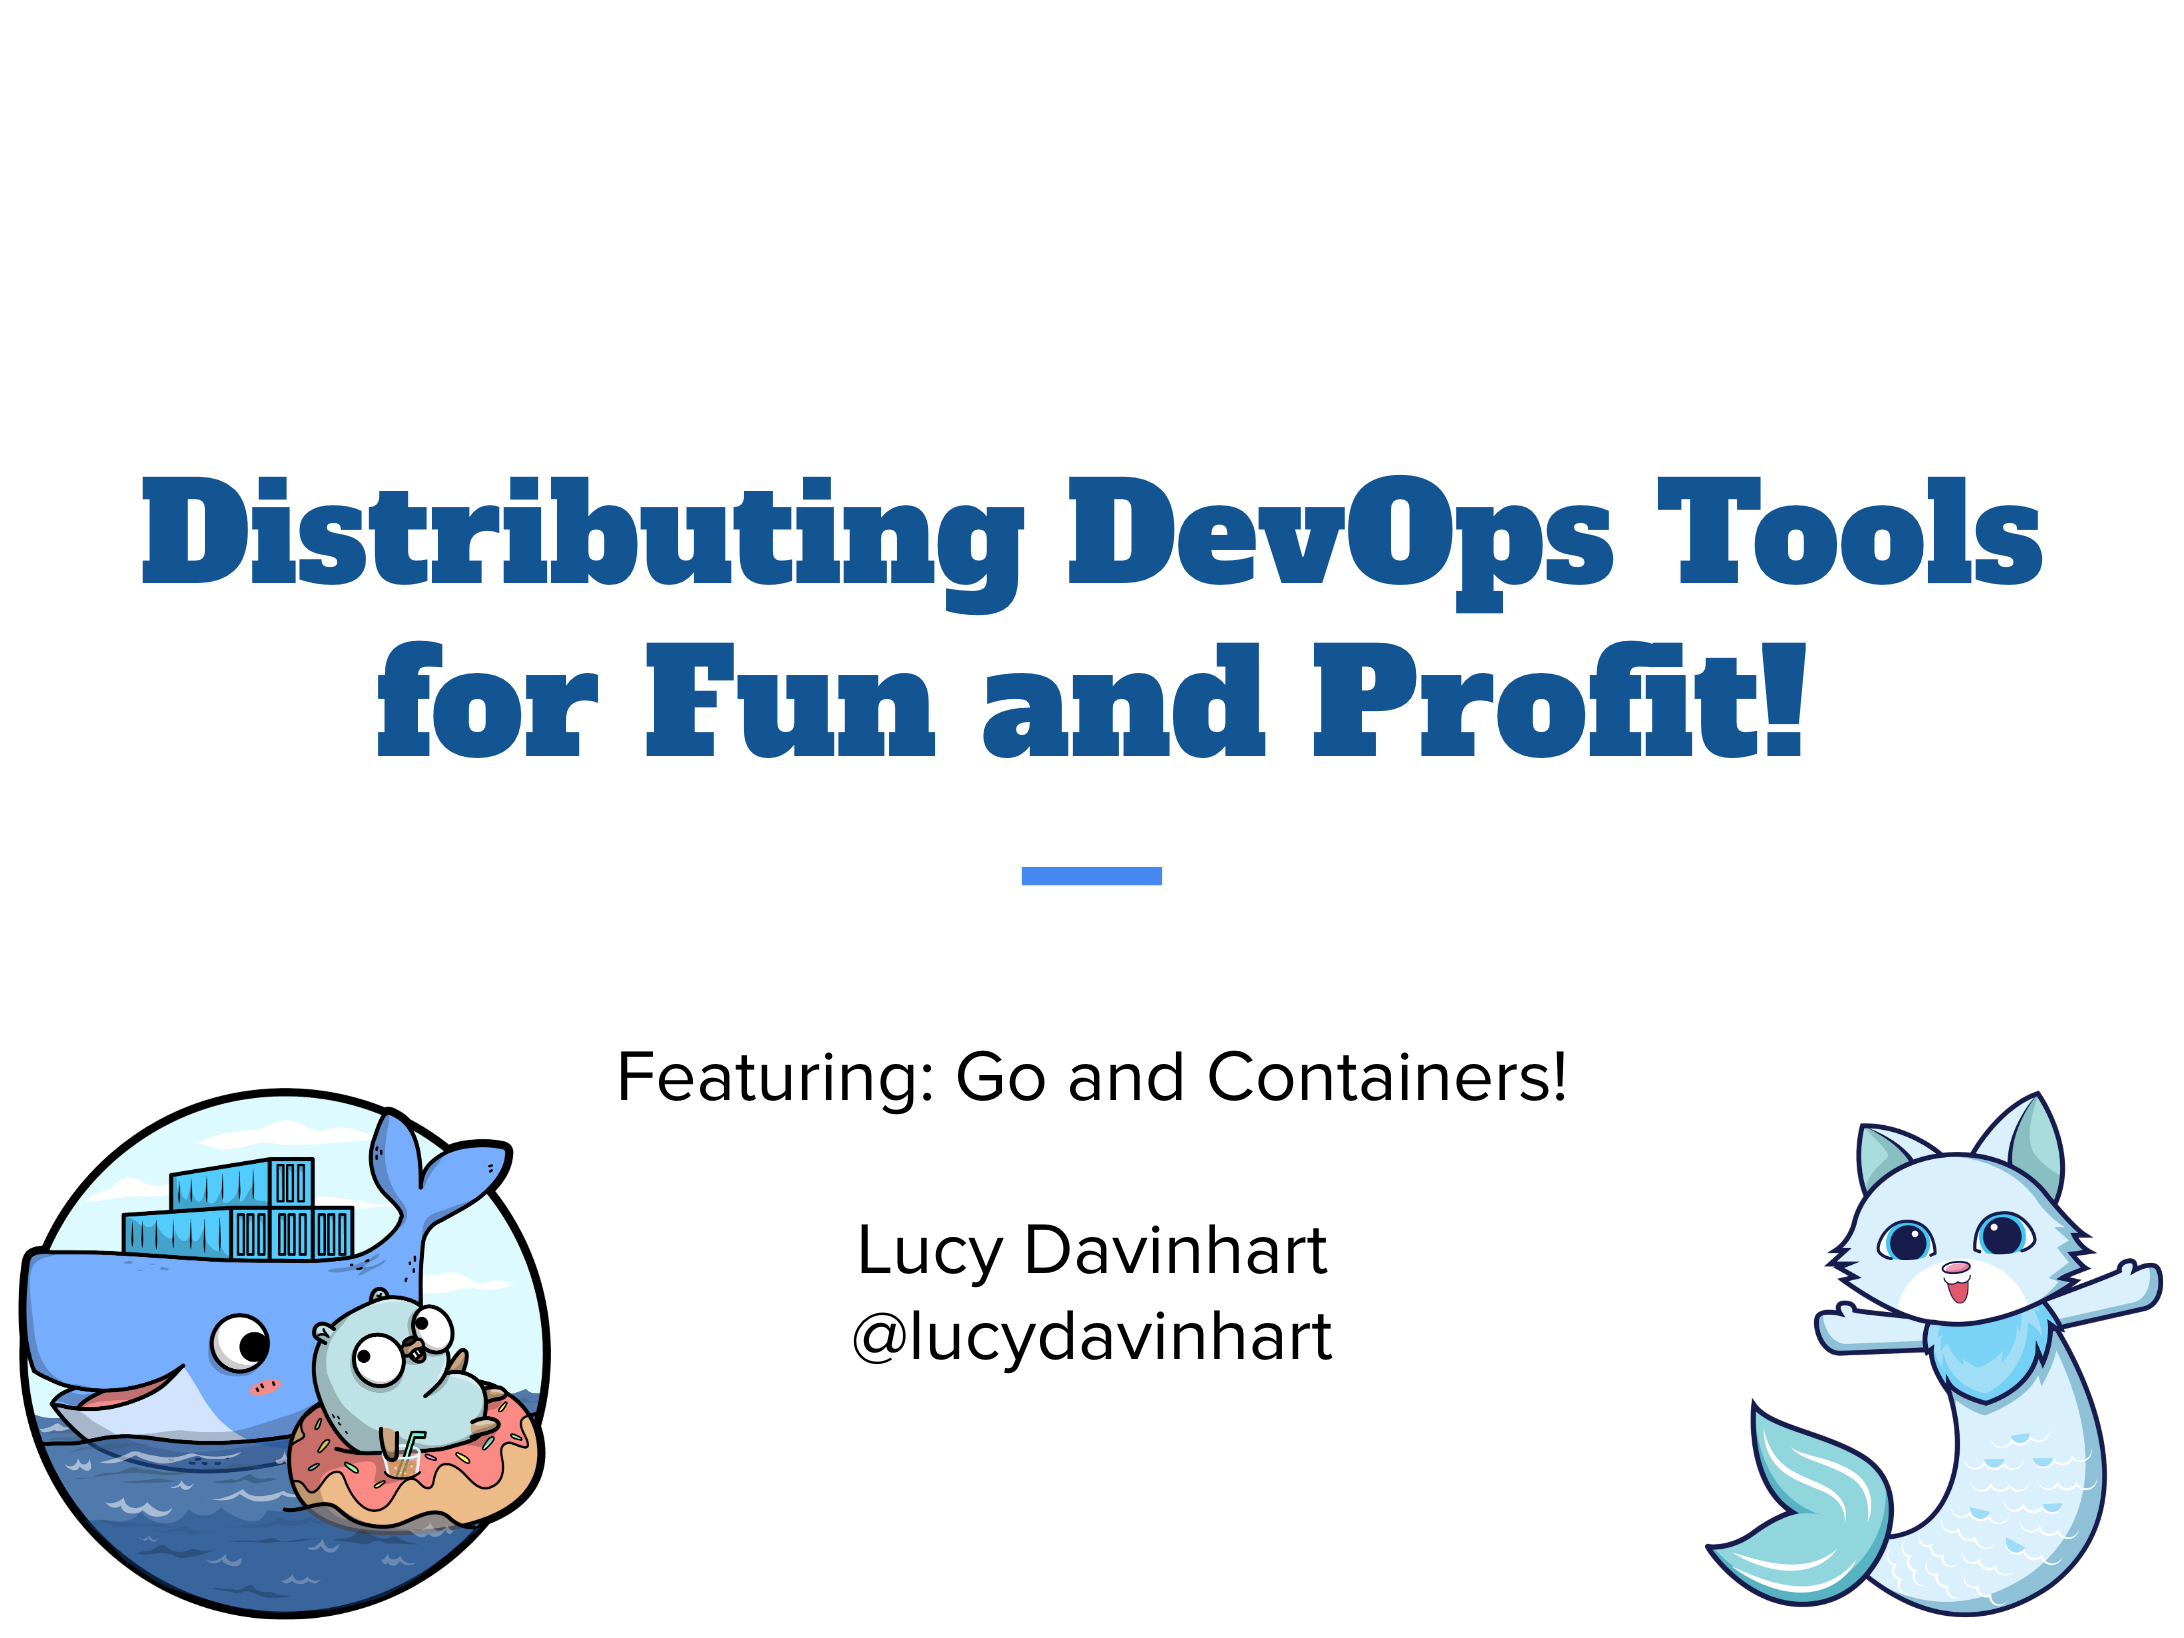 Title Slide. Distributing DevOps Tools for Fun and Profit! Featuring: Go and Containers! Lucy Davinhart @lucydavinhart